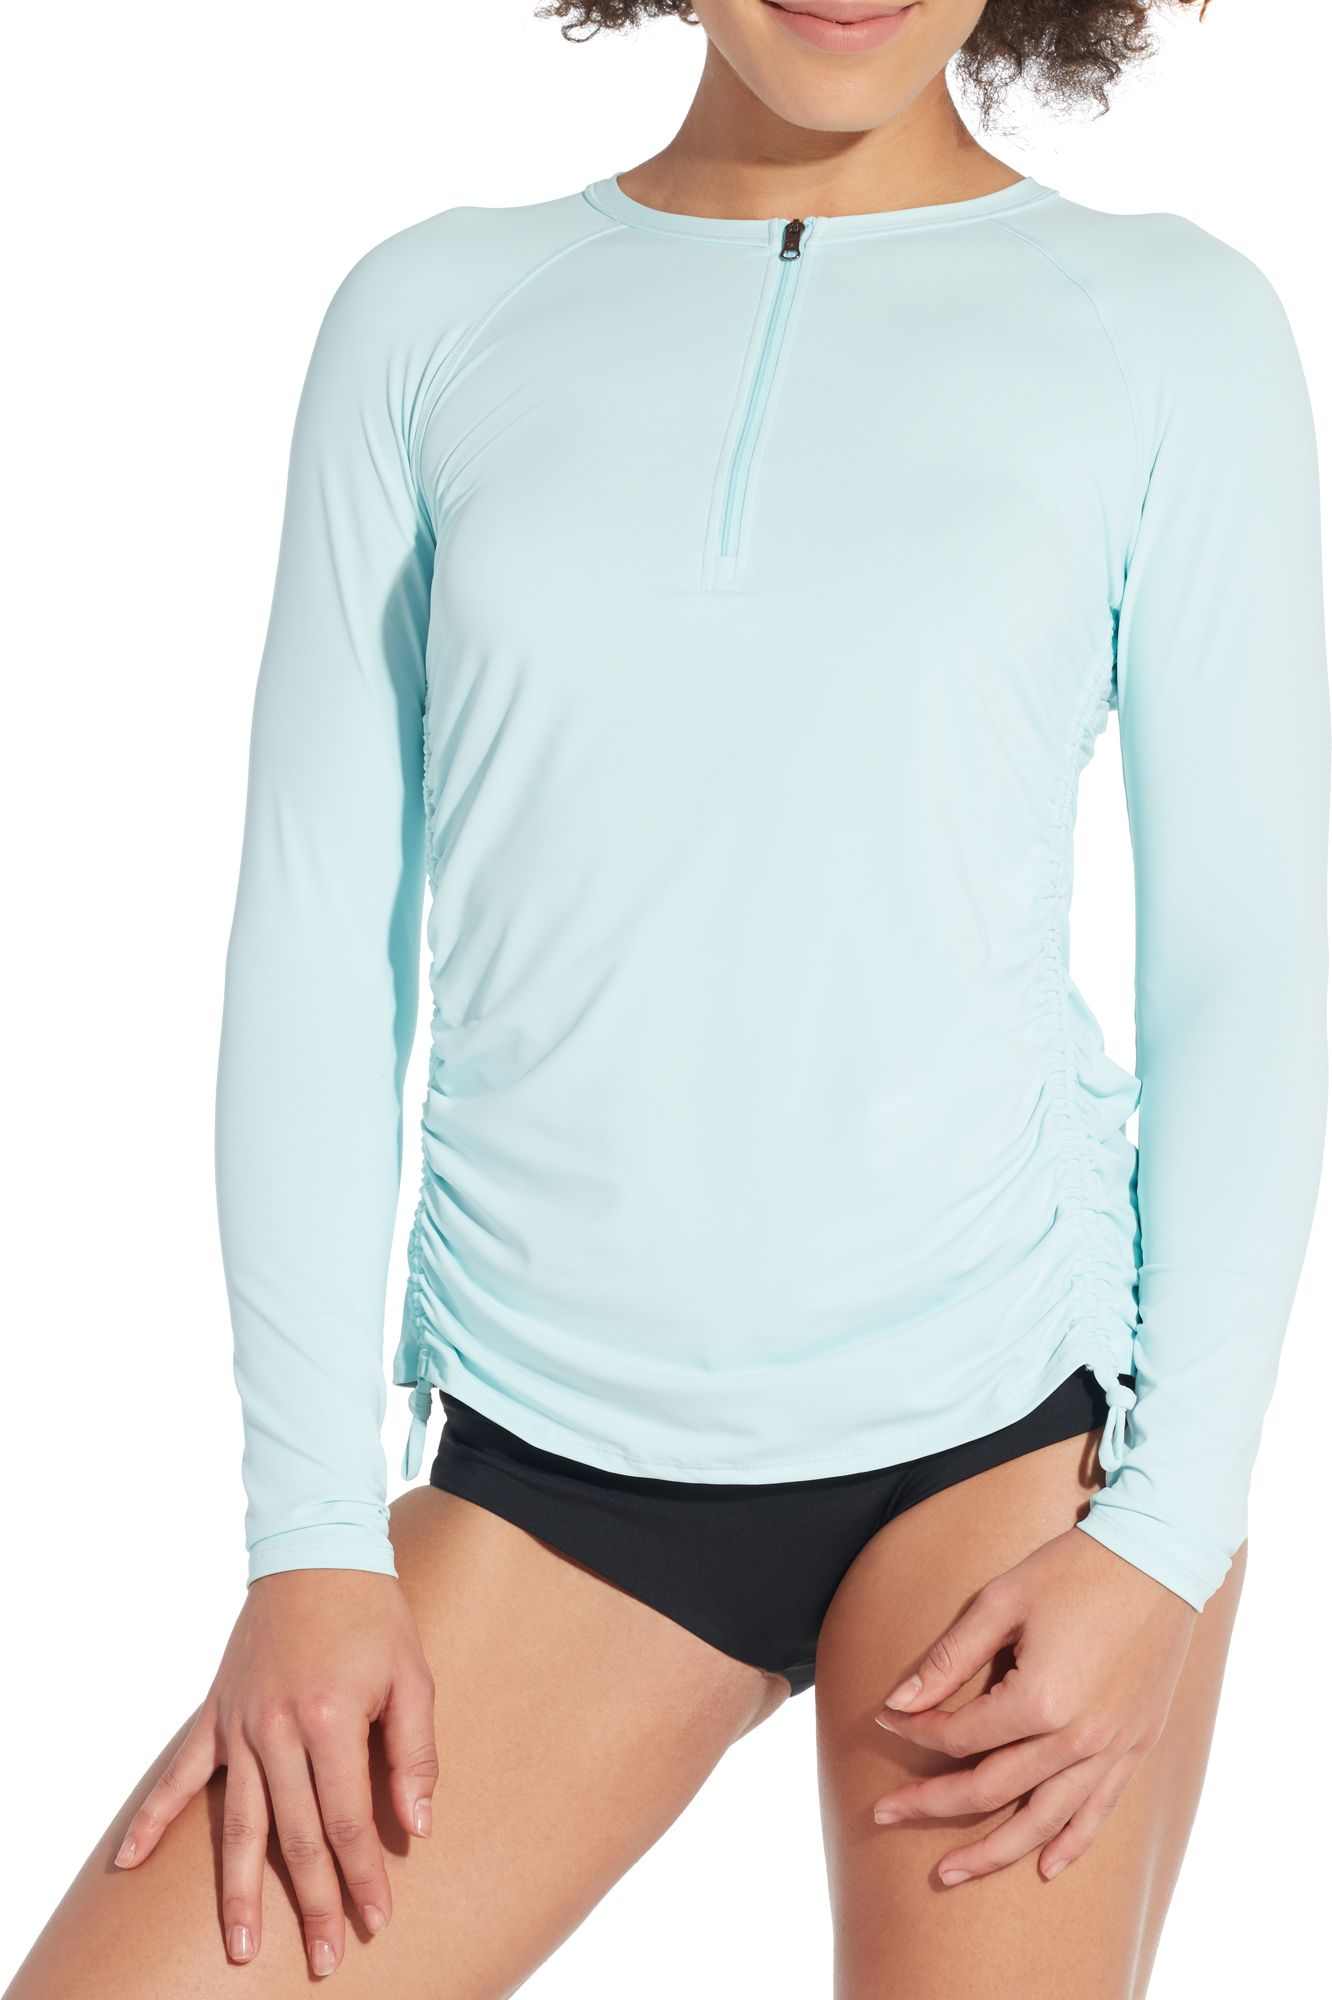 Calia By Carrie Underwood Women's Long Sleeve Zip Up Rash Guard by Calia By Carrie Underwood